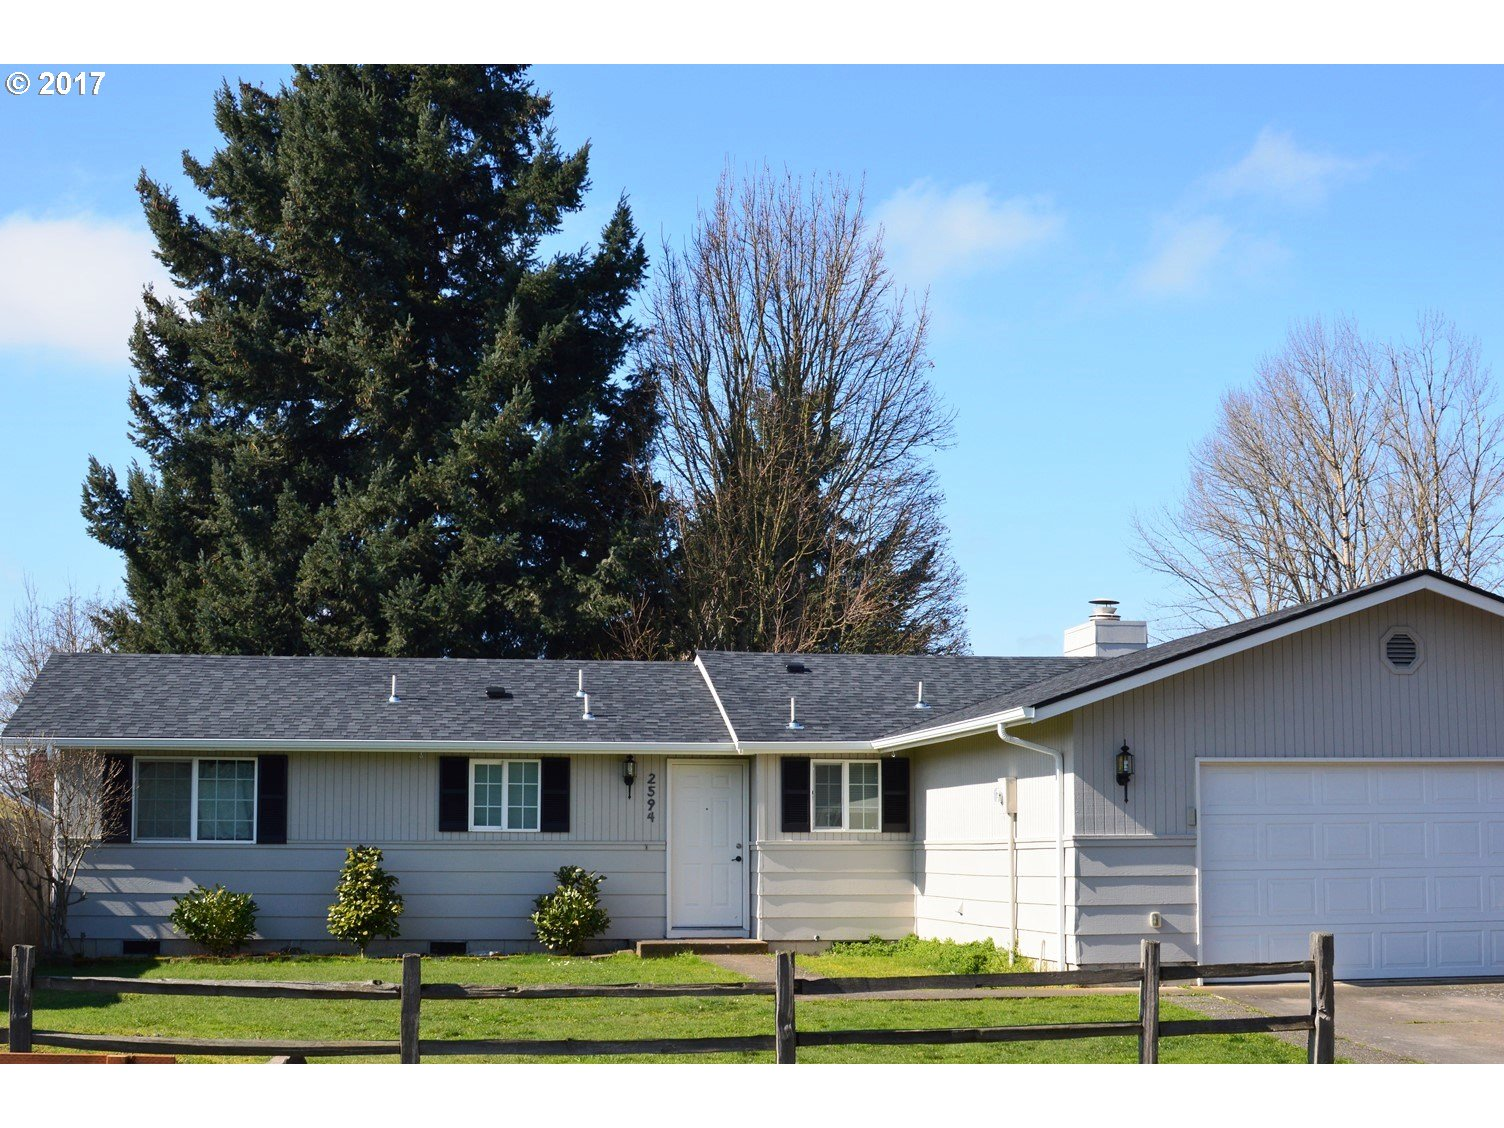 2594 MELROSE LOOP, Eugene, OR 97402